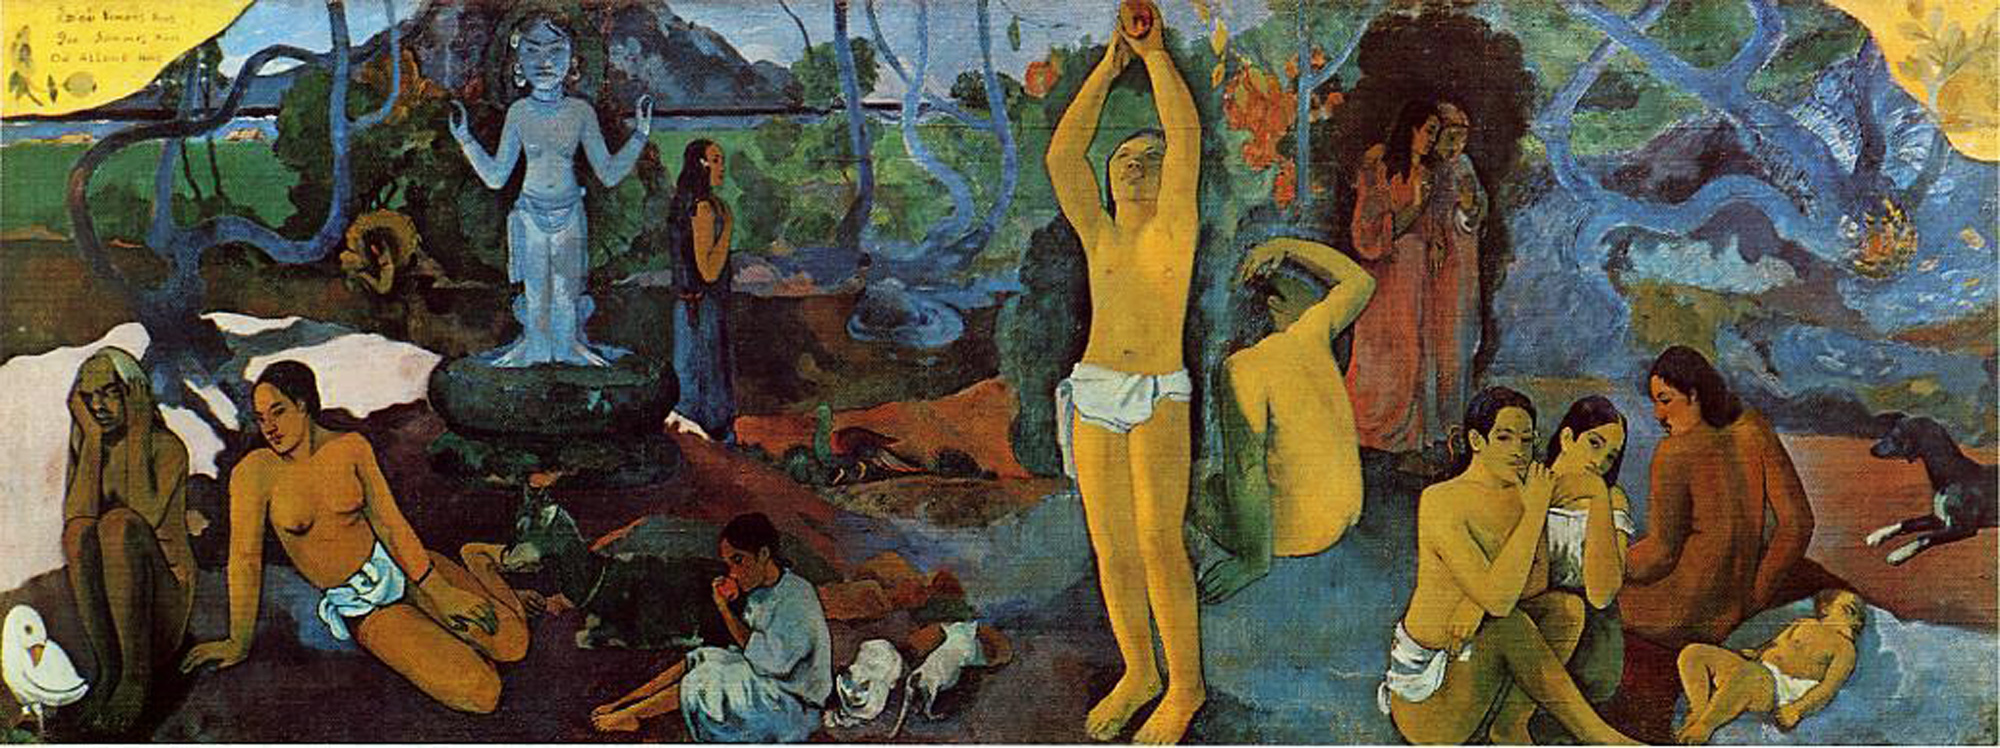 gauguin-where-do-we-come-from-what-are-we-where-are-we-going